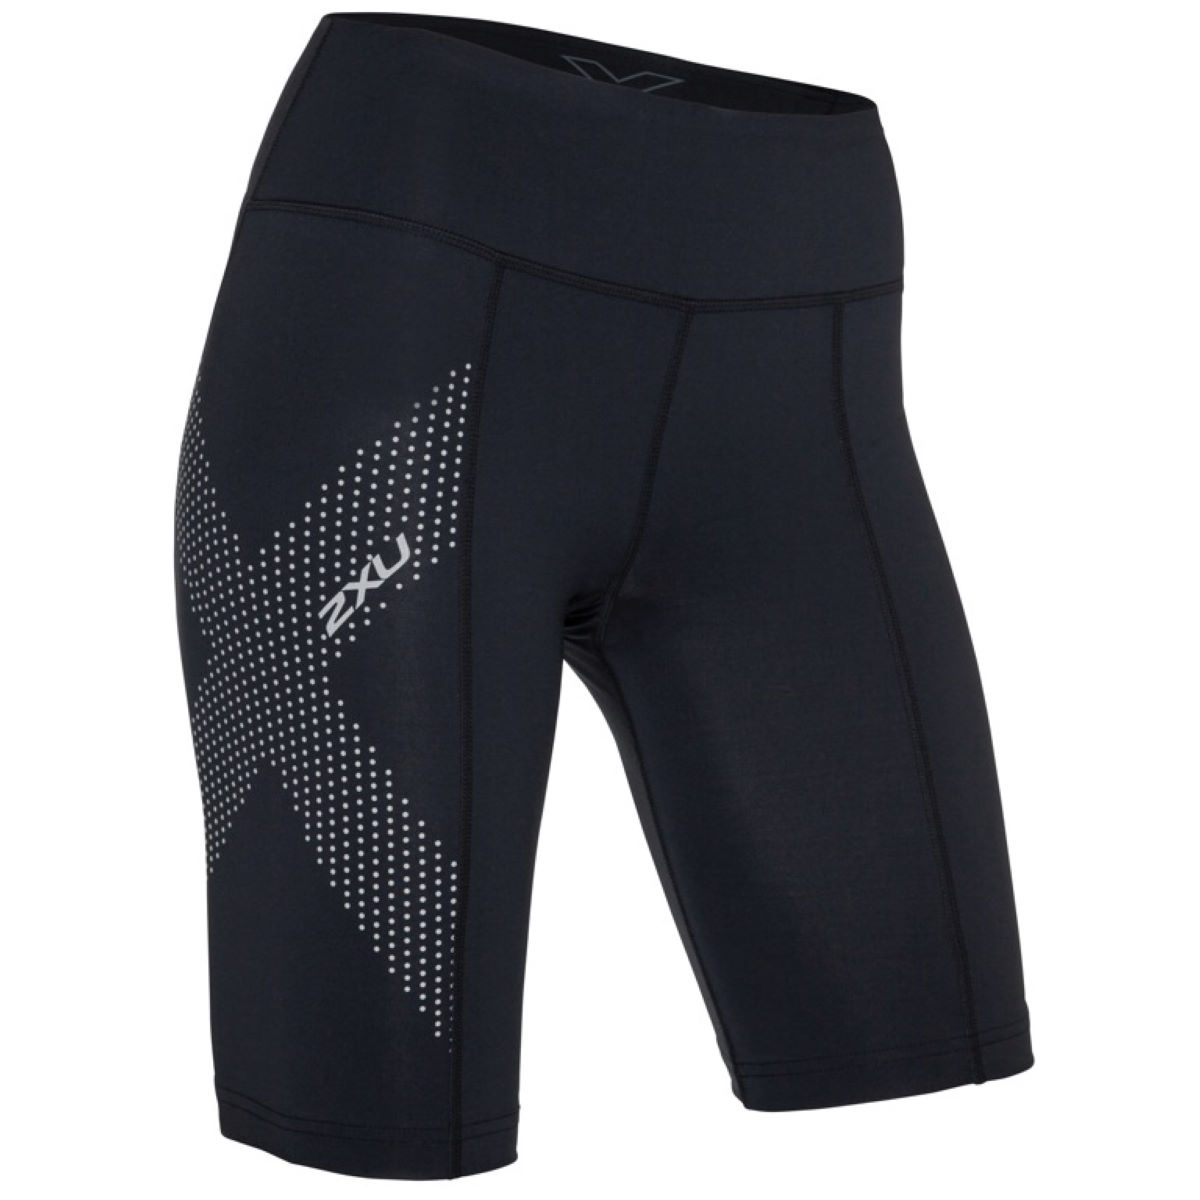 2XU Women's Mid-Rise Compression Shorts - Mallas cortas de compresión